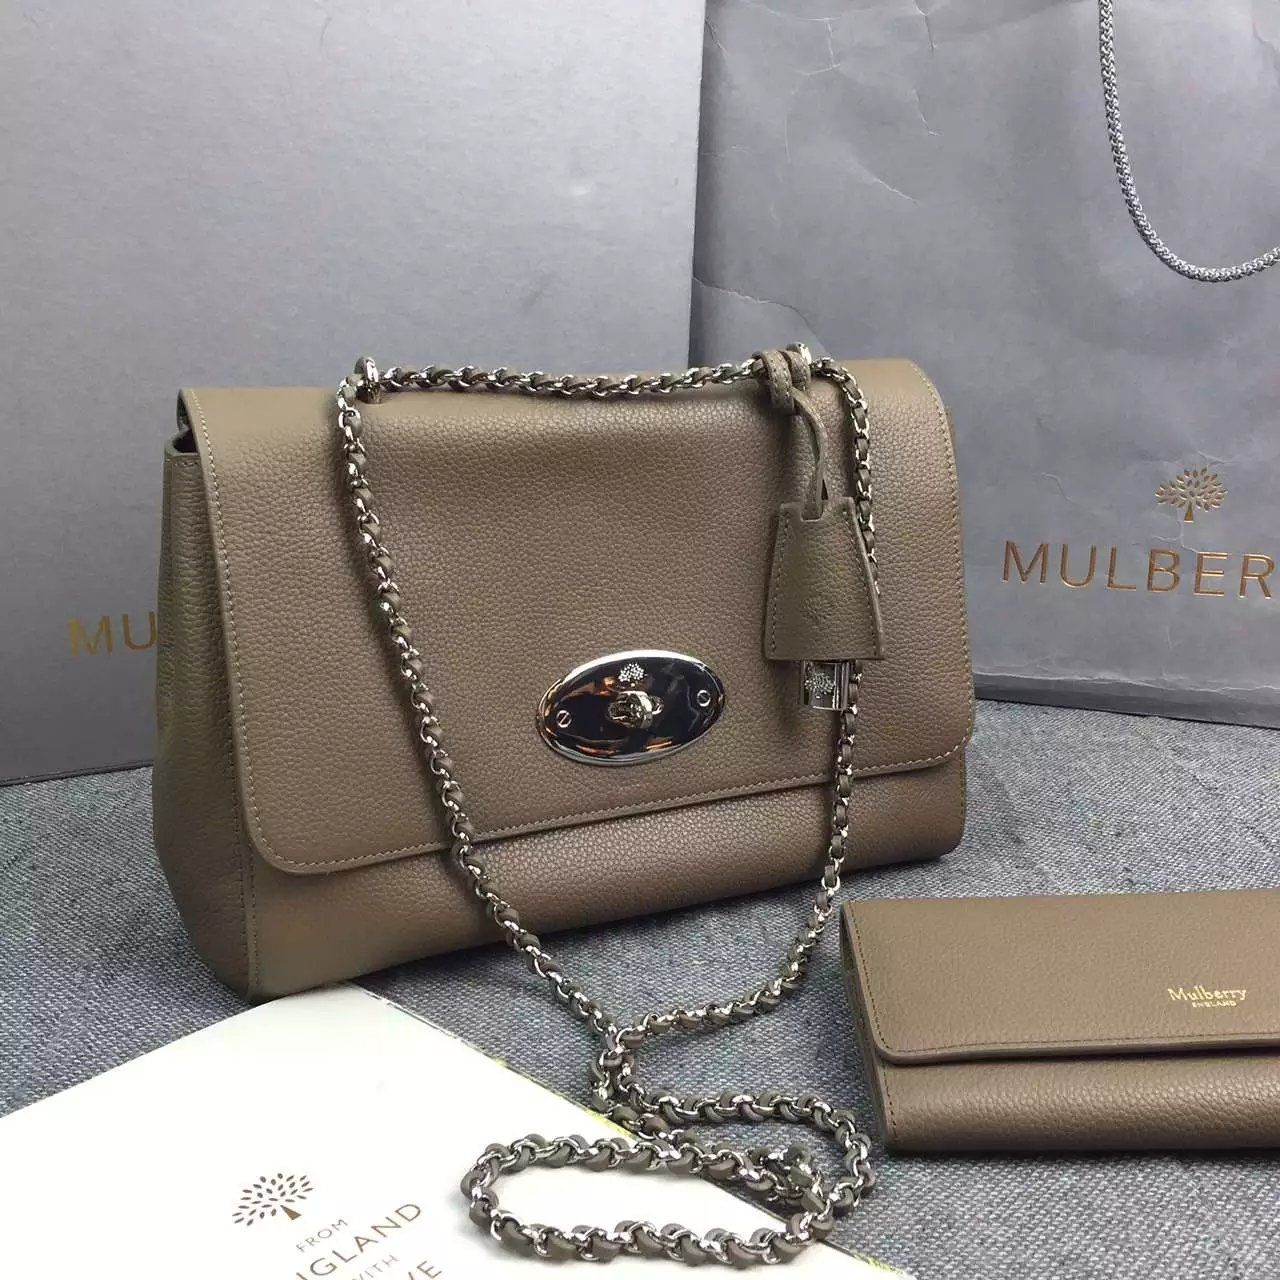 0079e64c5572 Spring Mulberry 2016 Lily Bags Outlet UK-Mulberry Medium Lily Black Small  Classic Grain